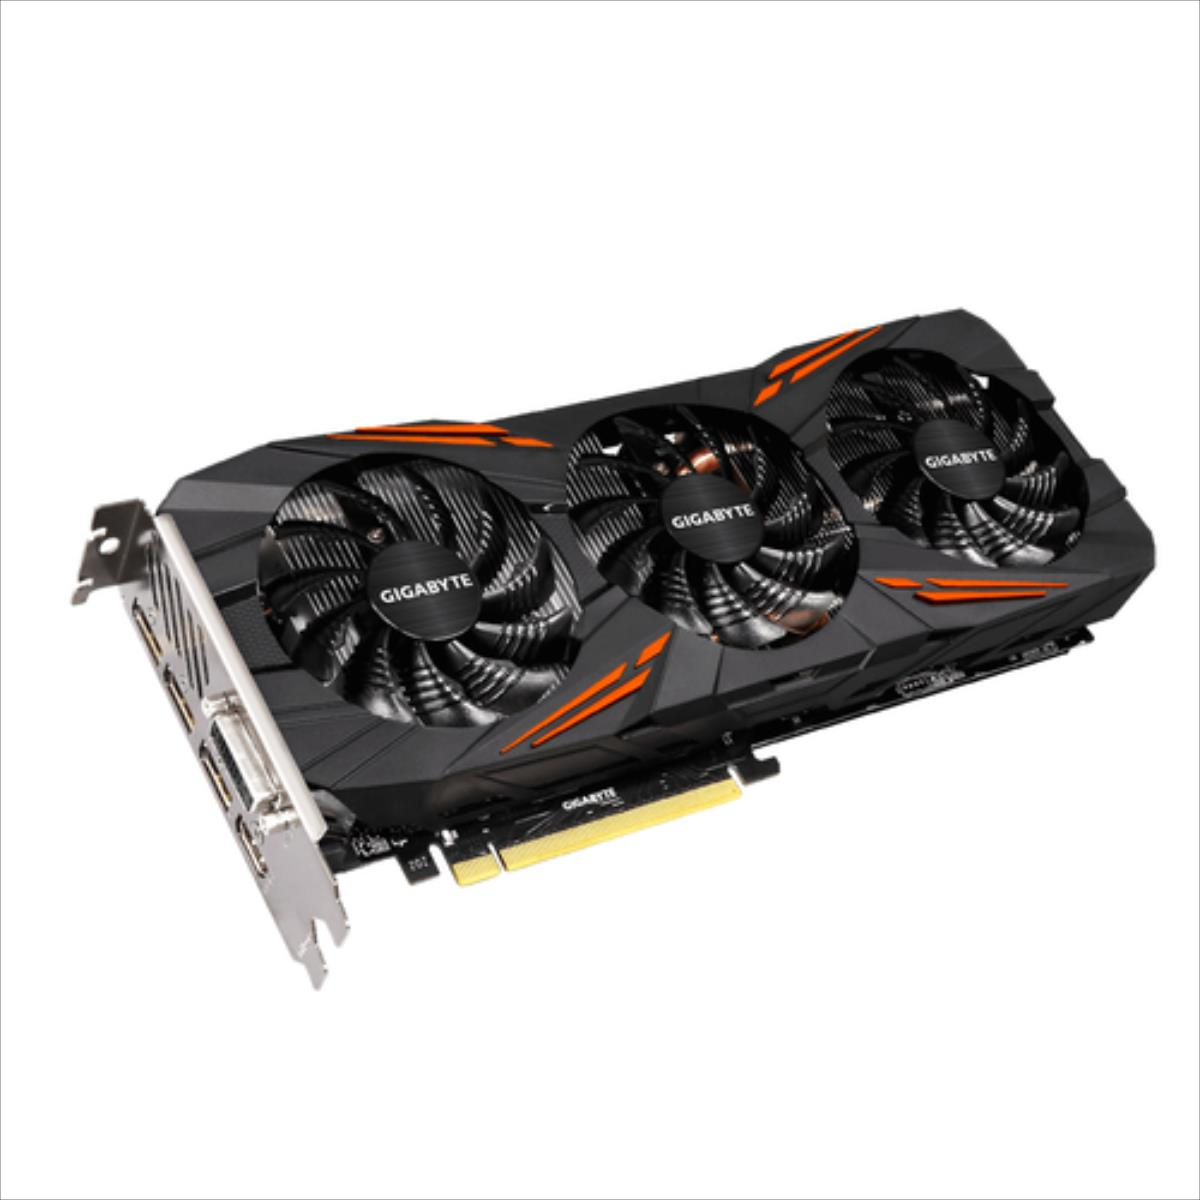 Gigabyte GeForce GTX 1070, 8GB GDDR5 (256 Bit), HDMI, DVI, 3xDP video karte